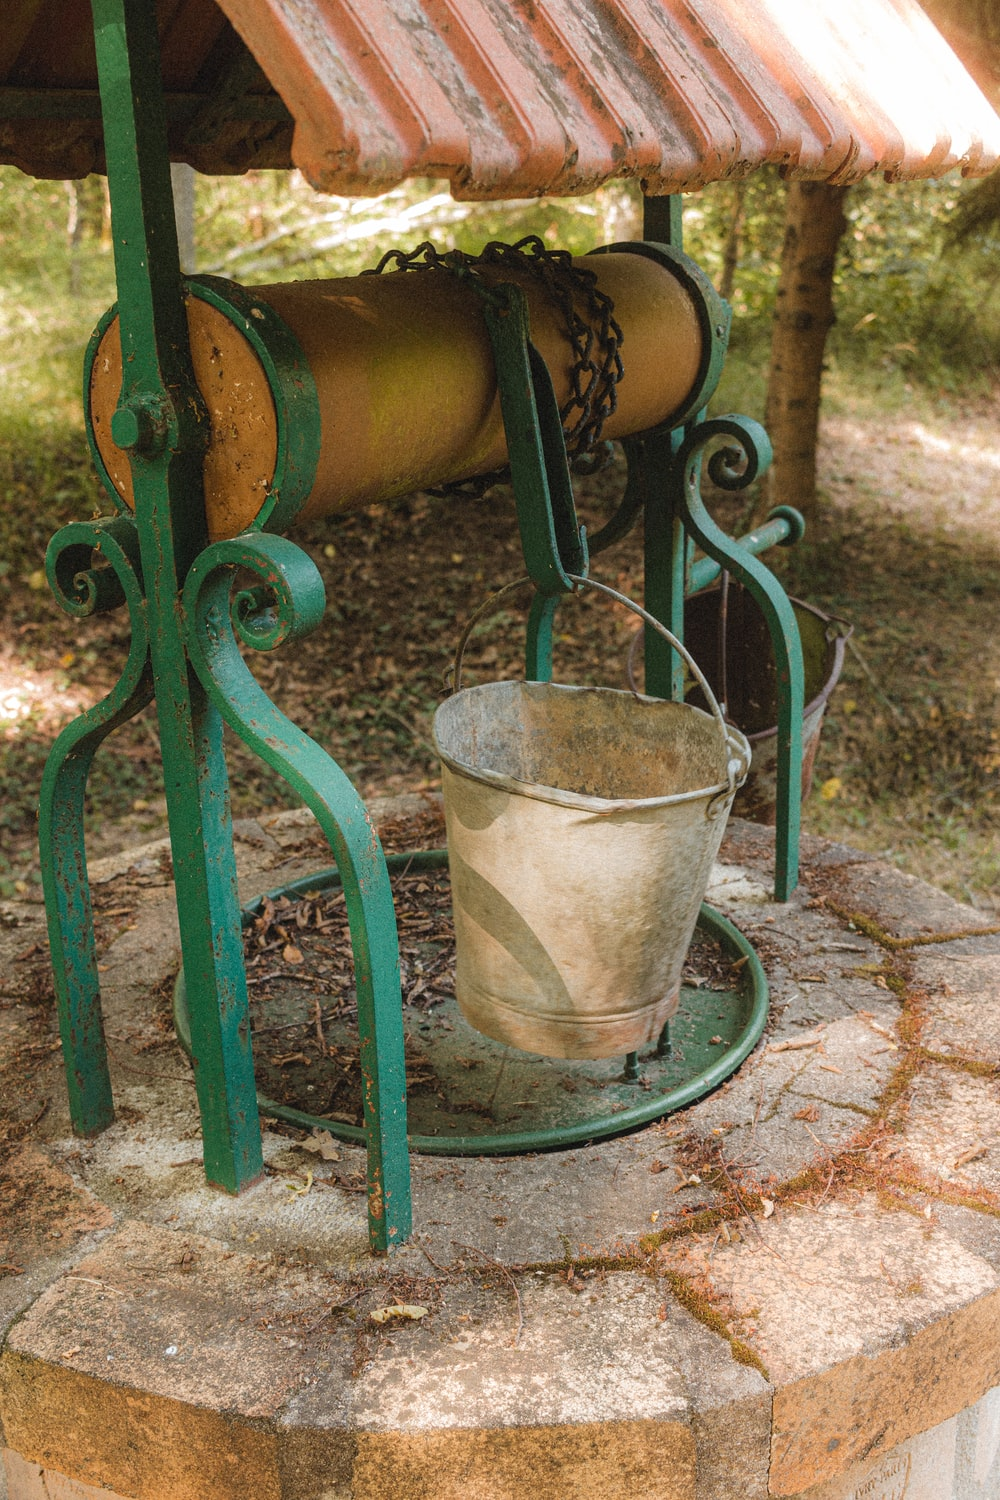 green metal bucket with water